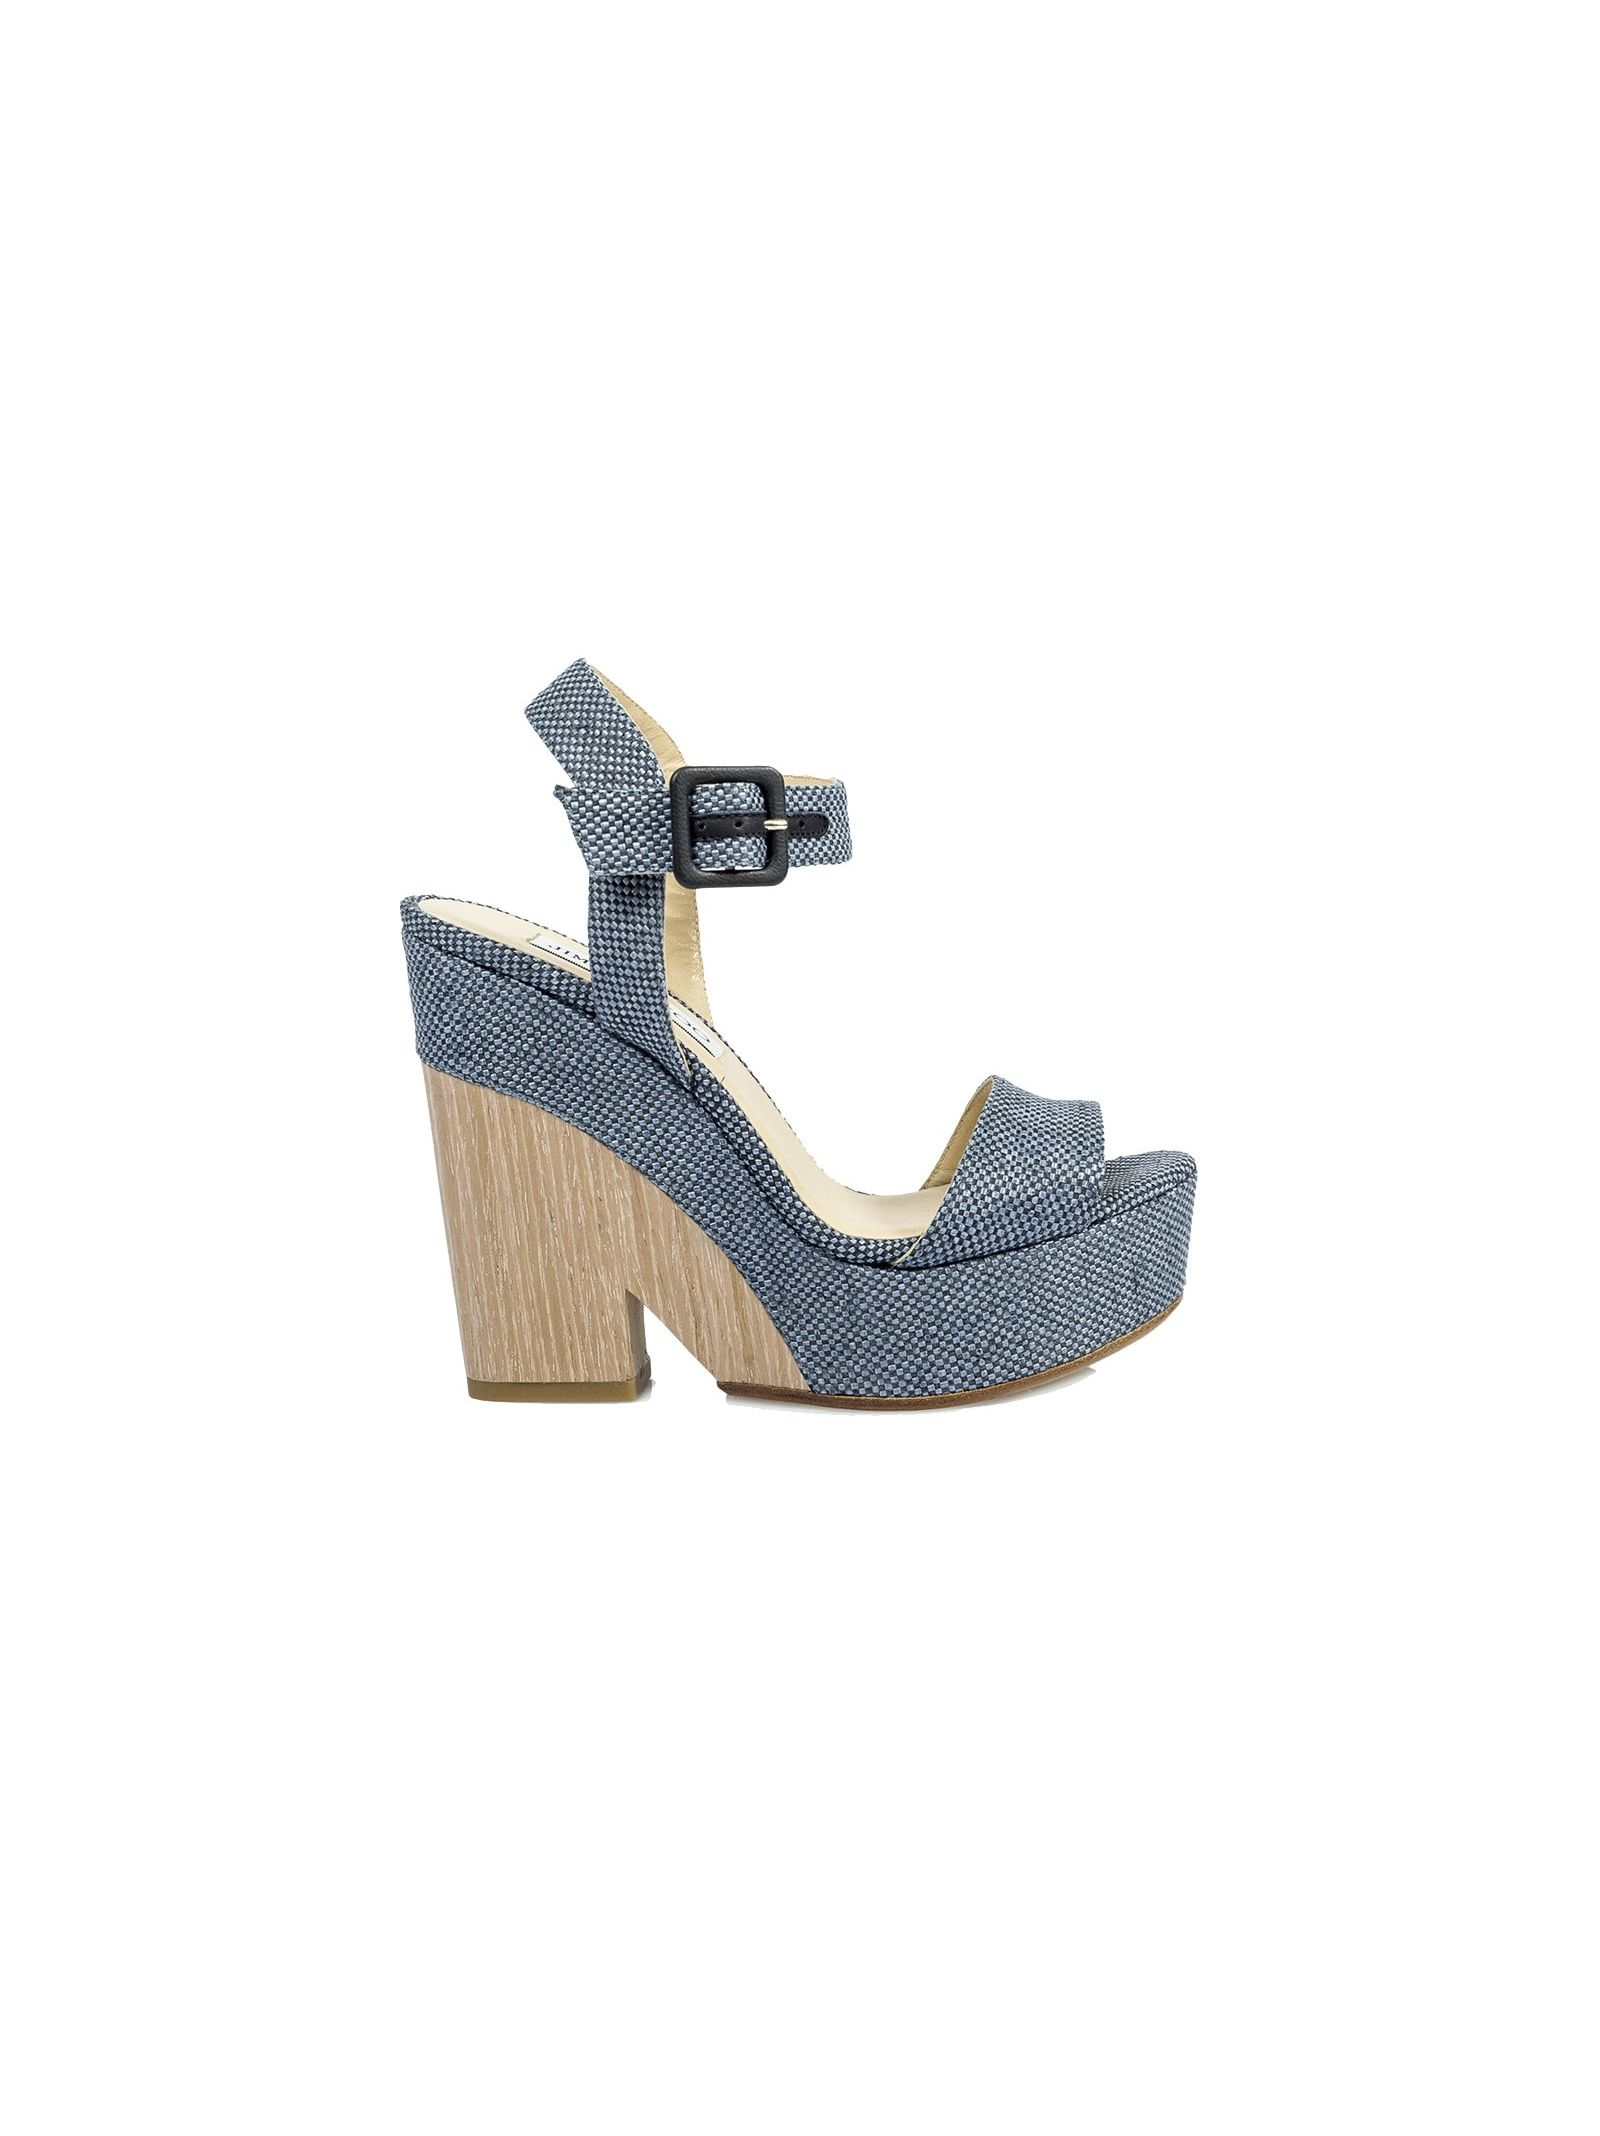 jimmy choo female 201920 denim raffia wedge sandals